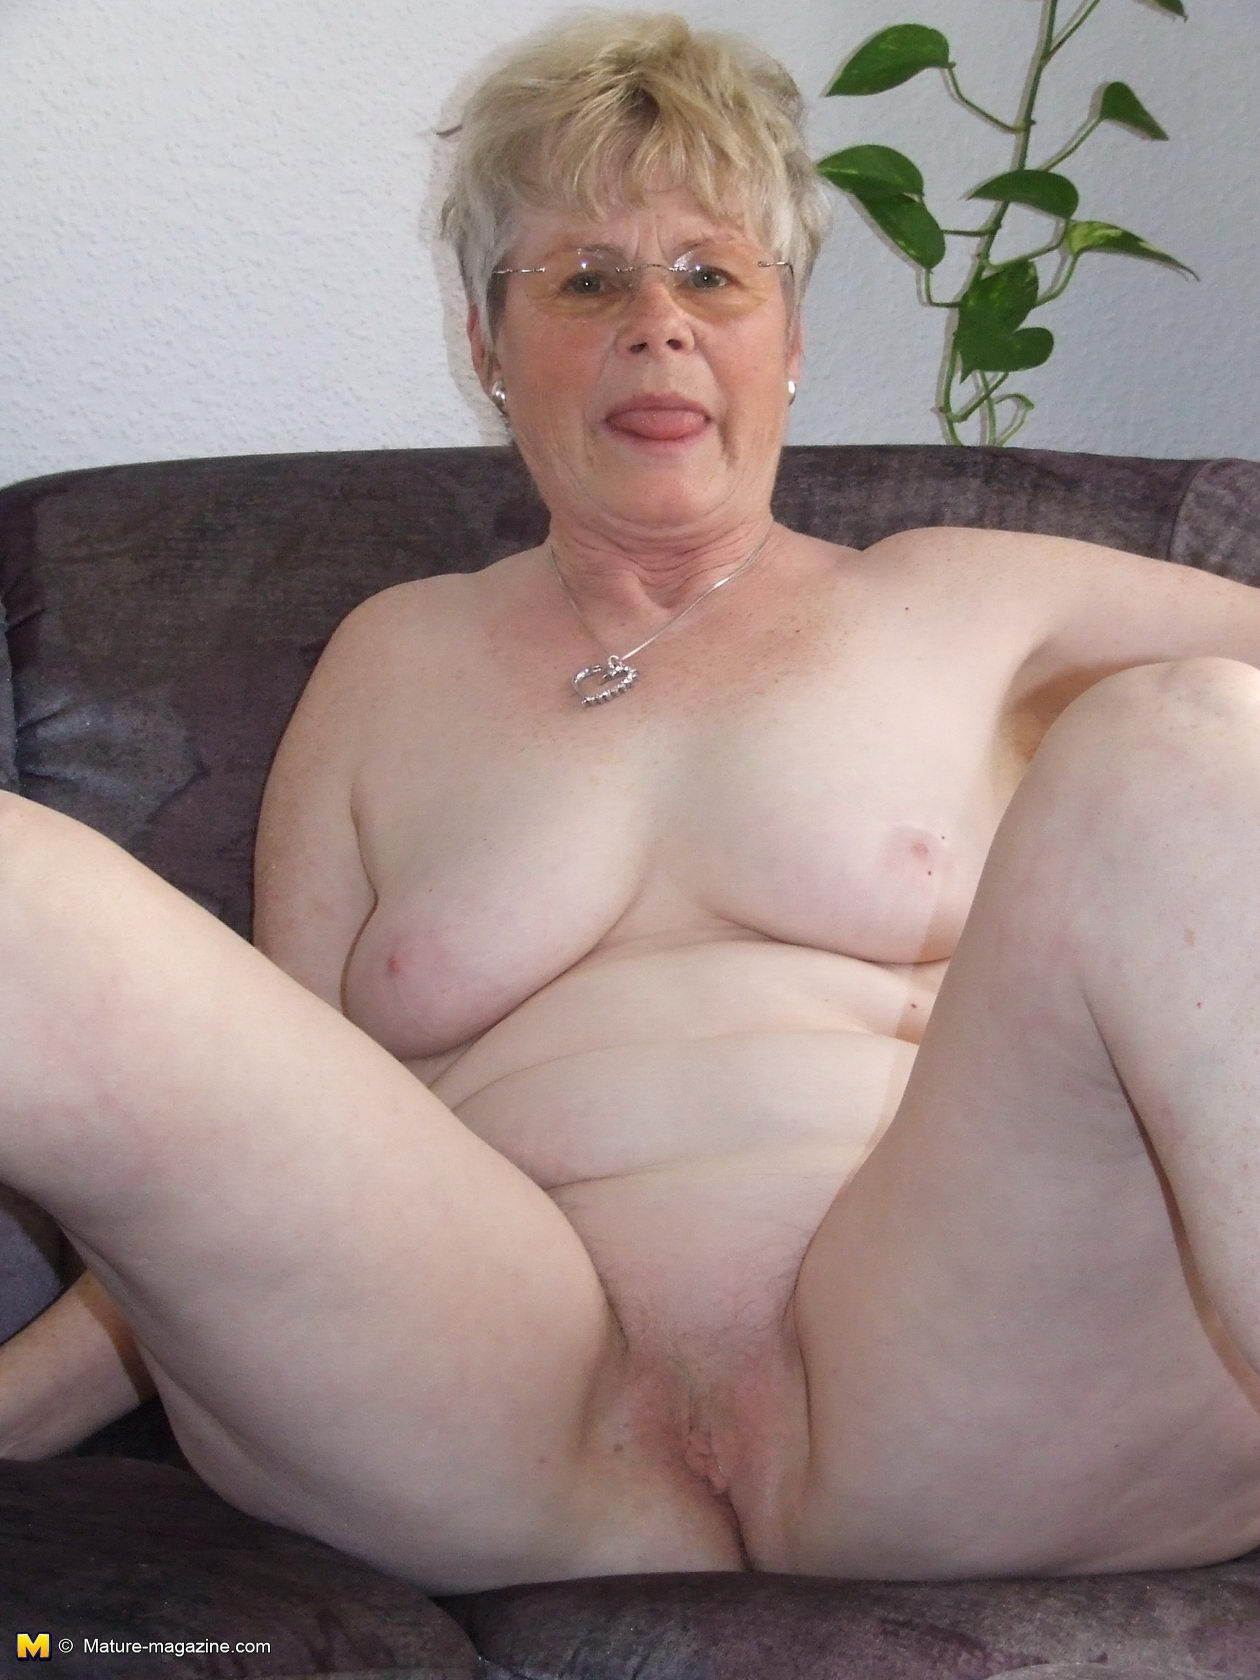 Big thick nude penises